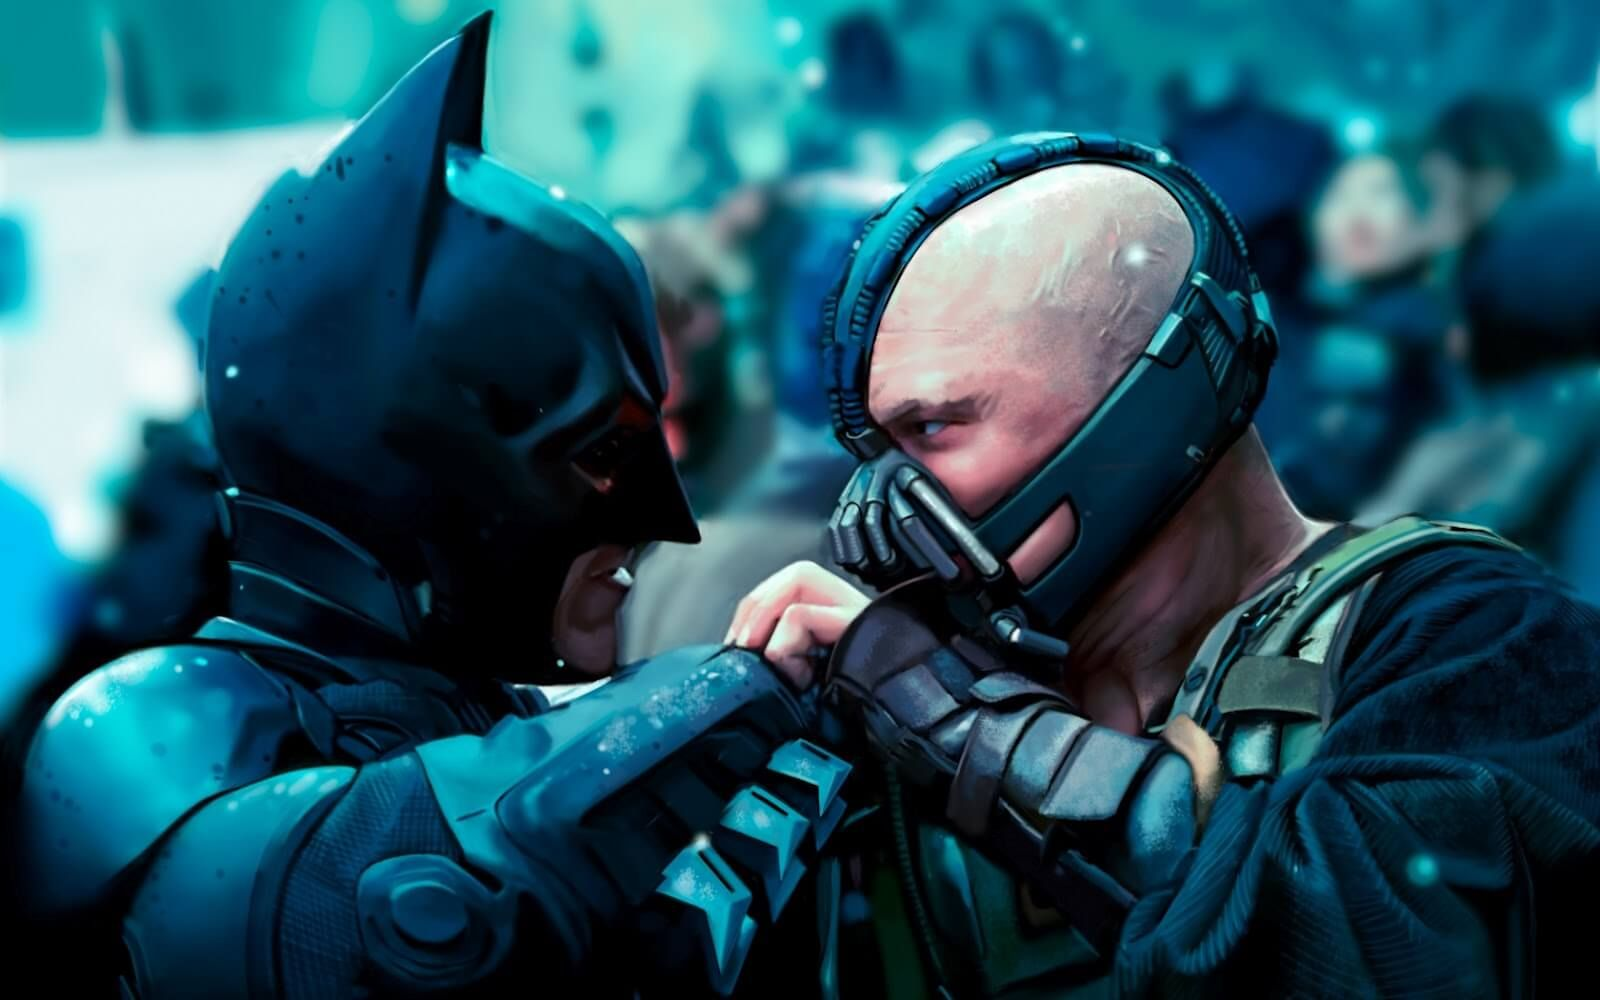 Batman vs bane wallpaper batman pinterest batman vs - Bane wallpaper ...